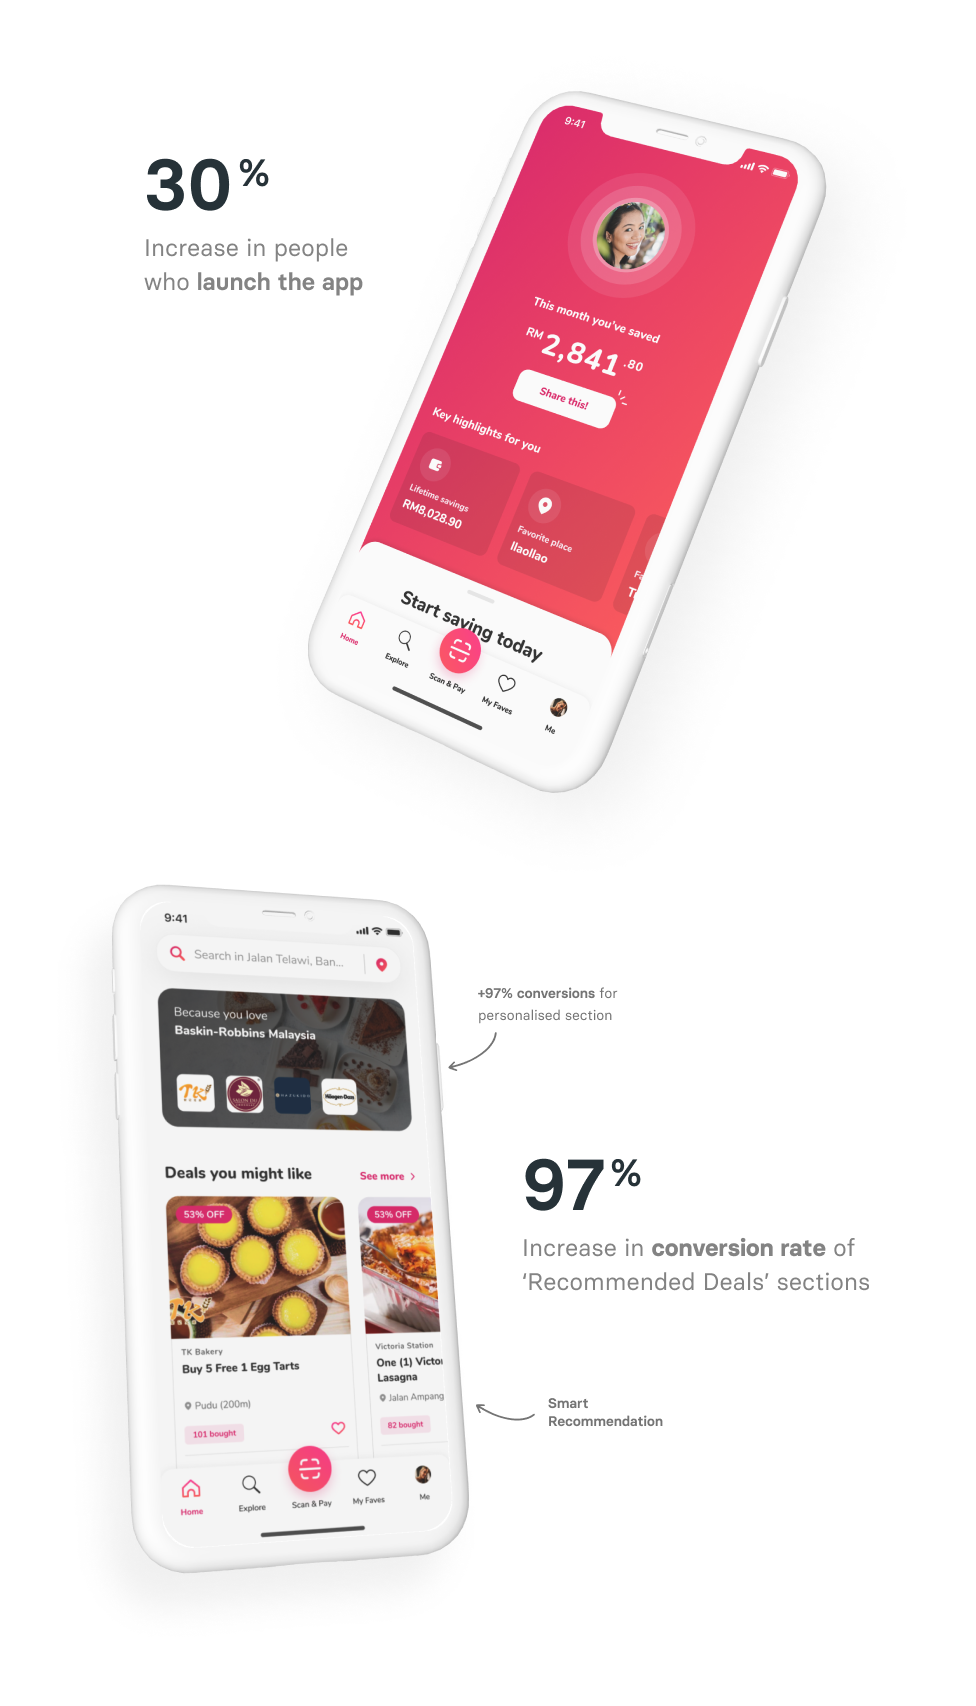 30% Increase in people who launch the app